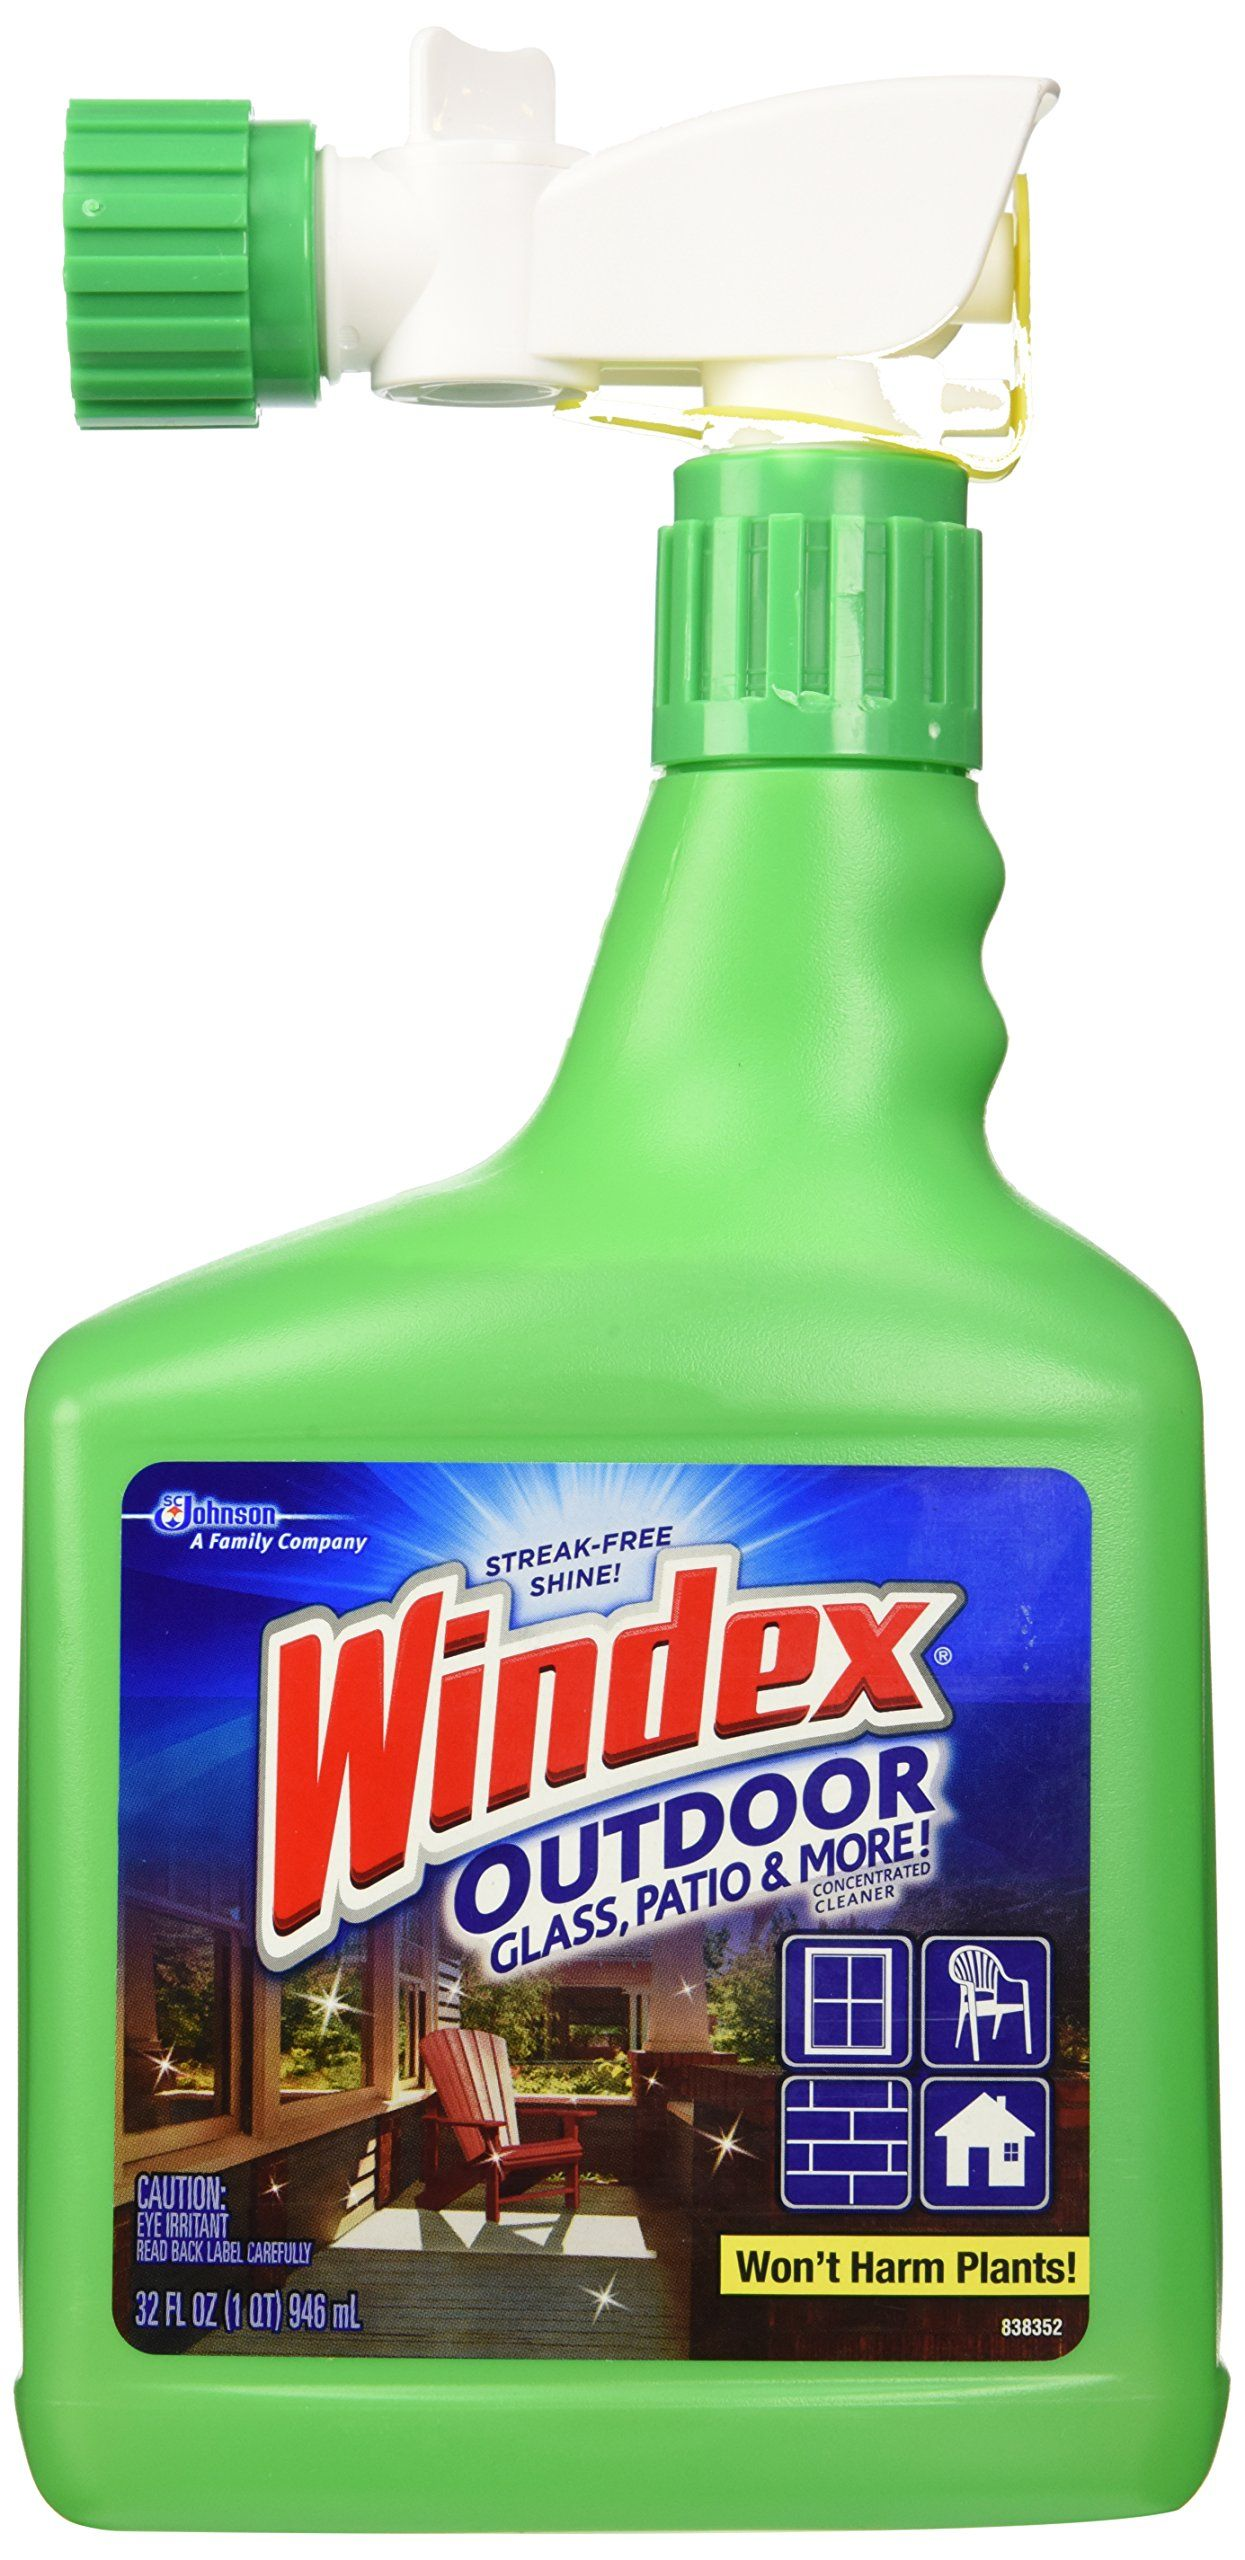 Windex Outdoor Gl Patio Cleaner 32oz Connects To Your Hose For Hard Reach Windows